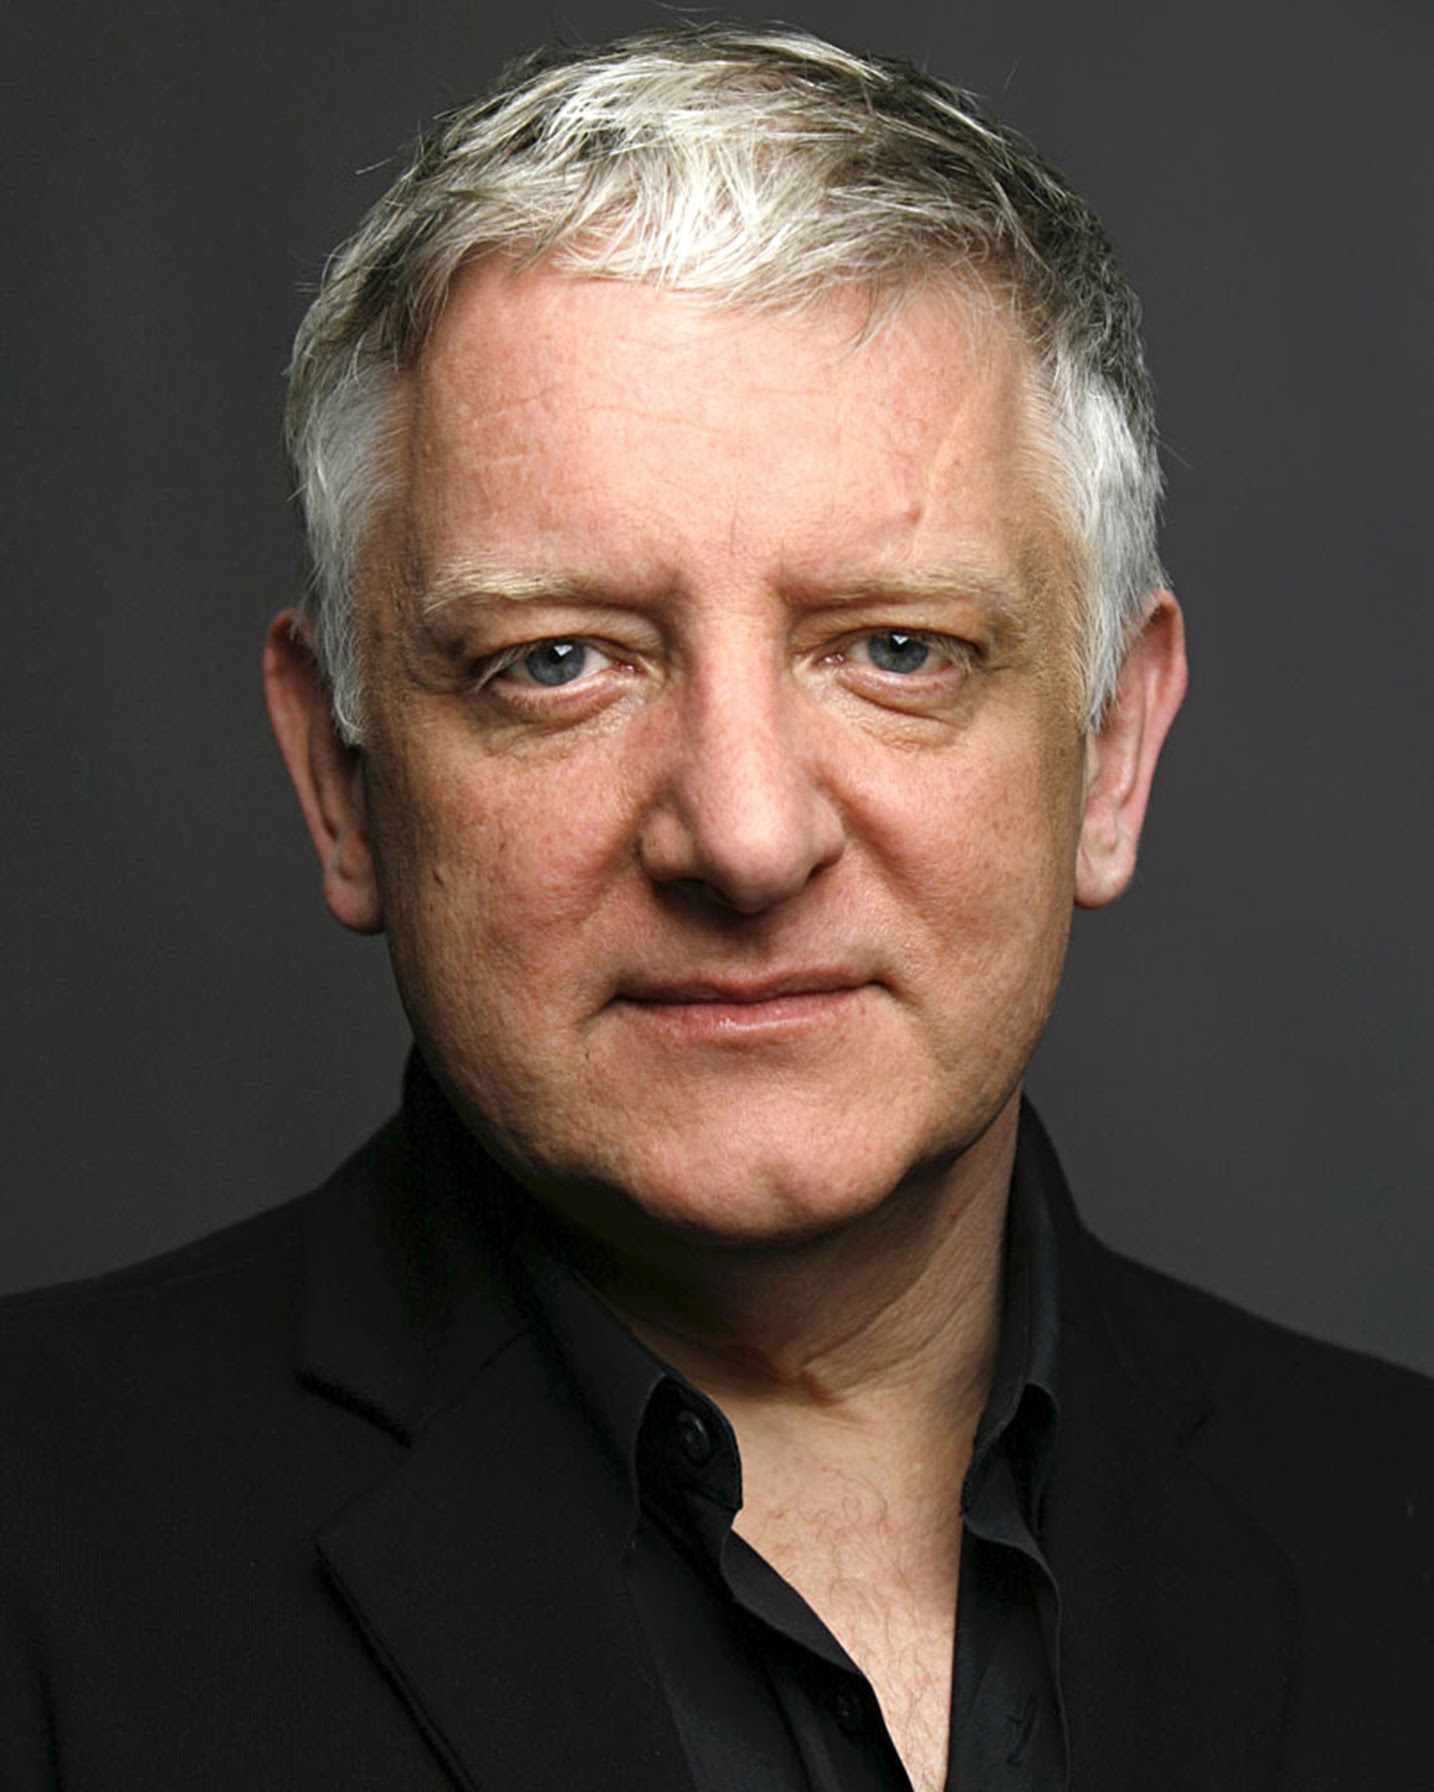 Sir Simon Russell Beale